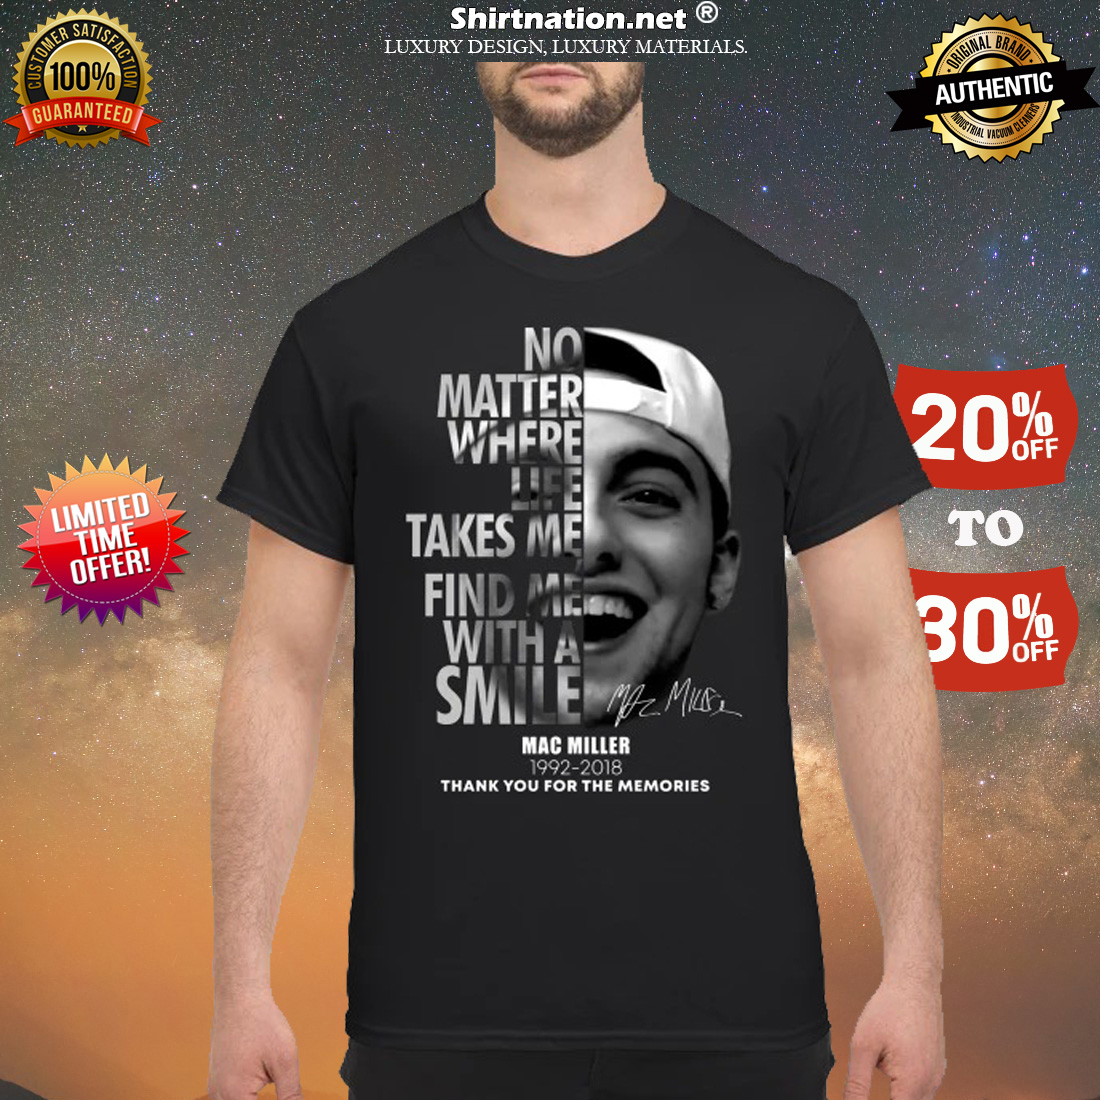 No matter where life takes me find me with a smile Mac Miller 1992 2018 shirt